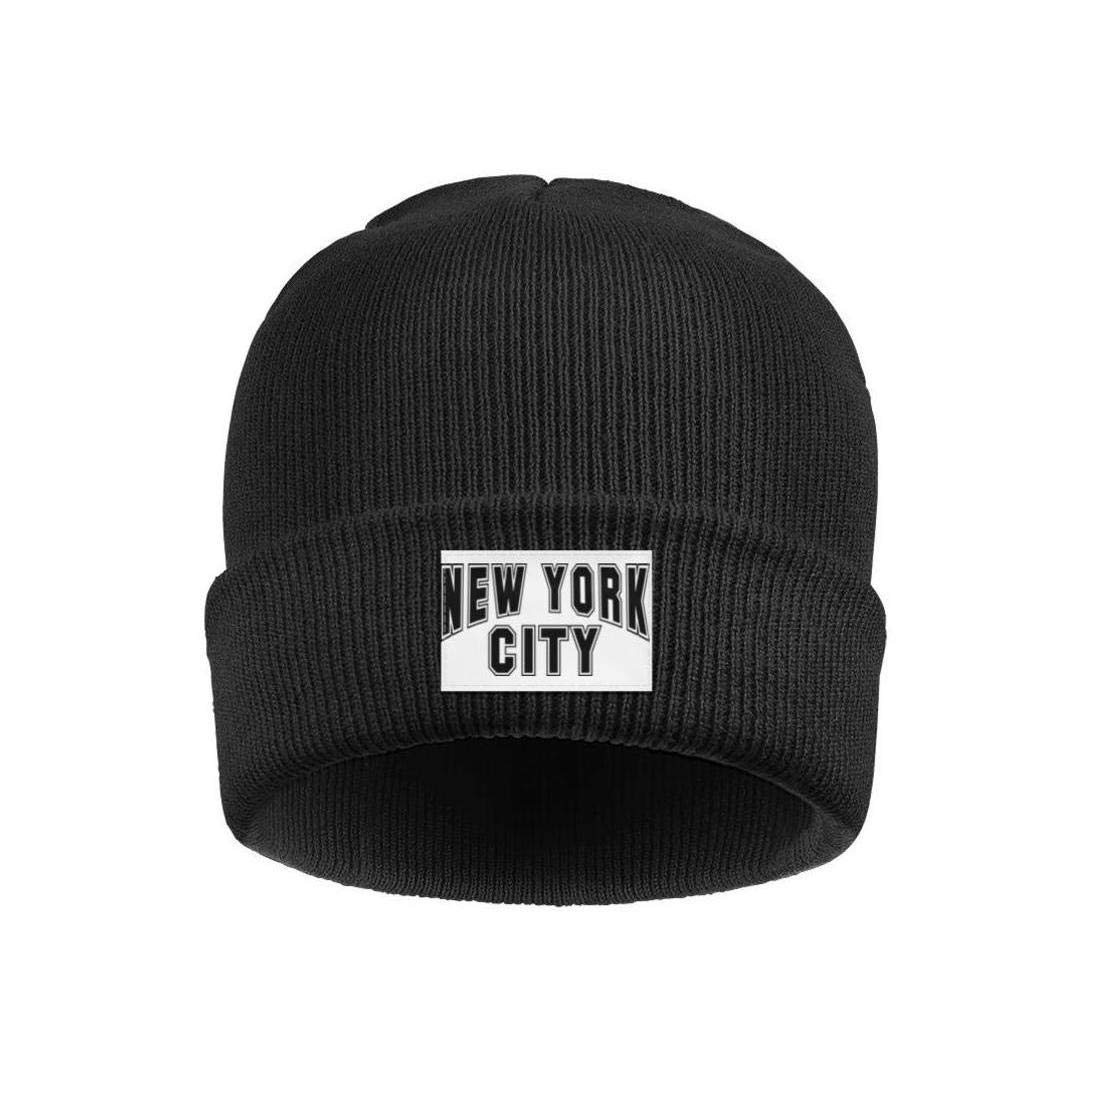 Mens Slouchy Beanie Hat Winter Hats York City NYC Retro Logo Multifunction Cap